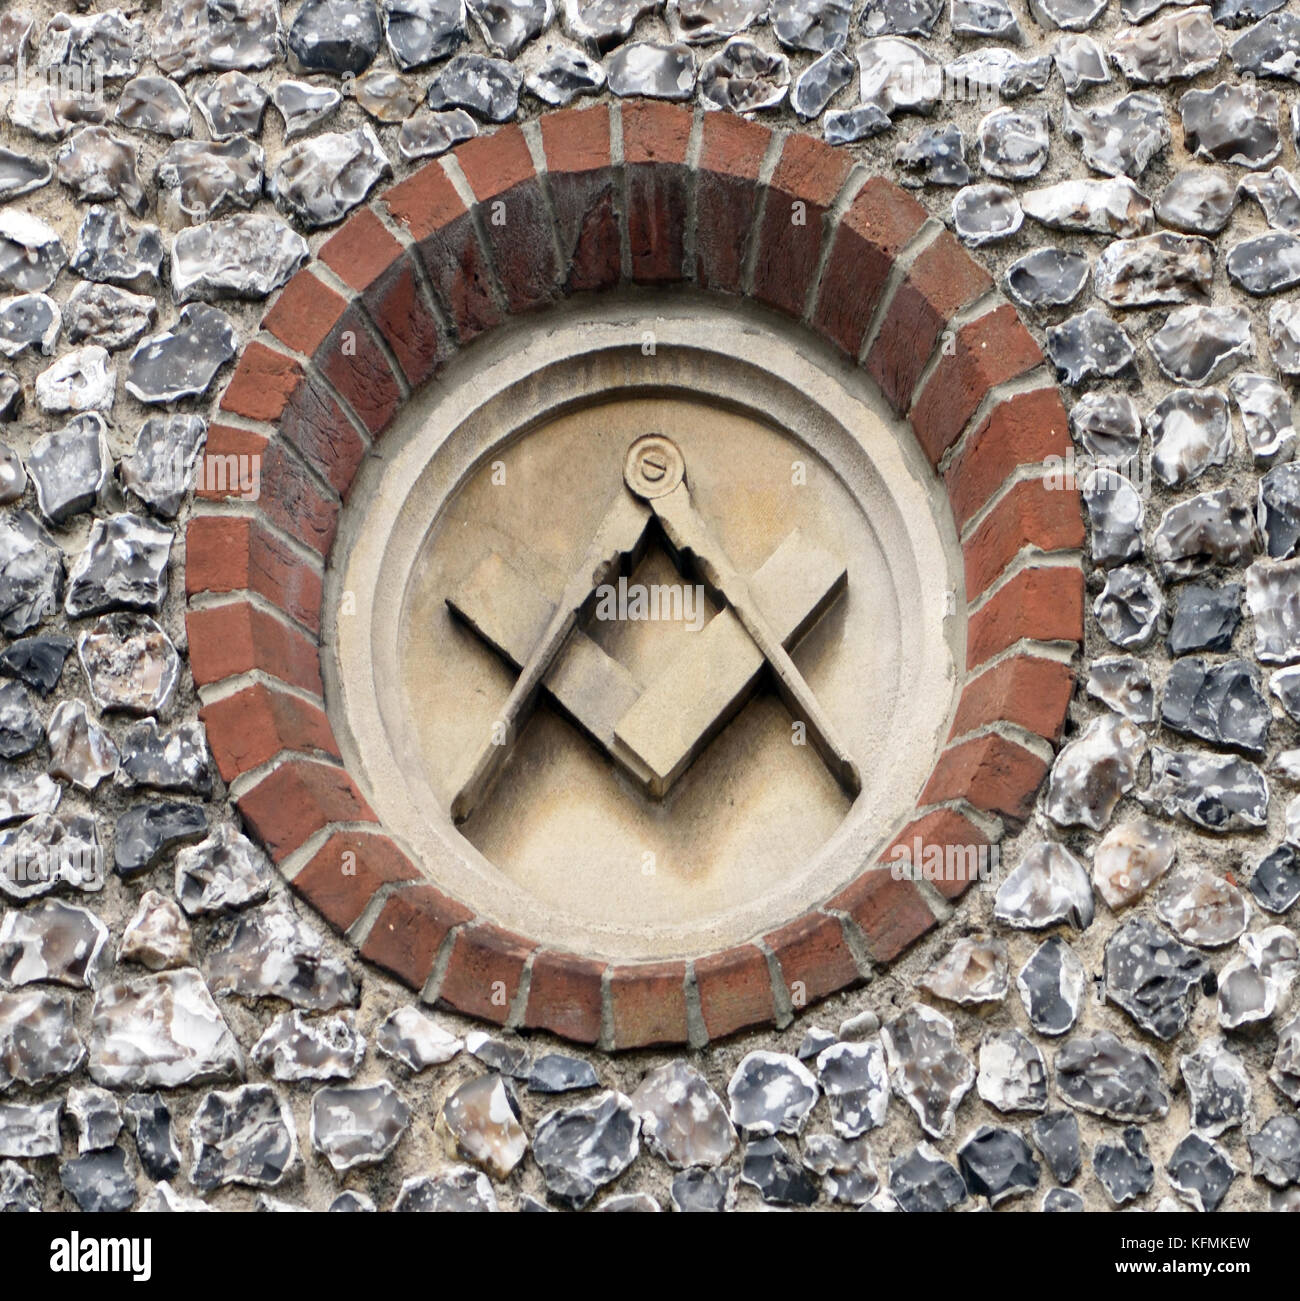 Masonic symbols stock photos masonic symbols stock images alamy compasses and a square masonic symbols carved on stone plagues in a flint wall on biocorpaavc